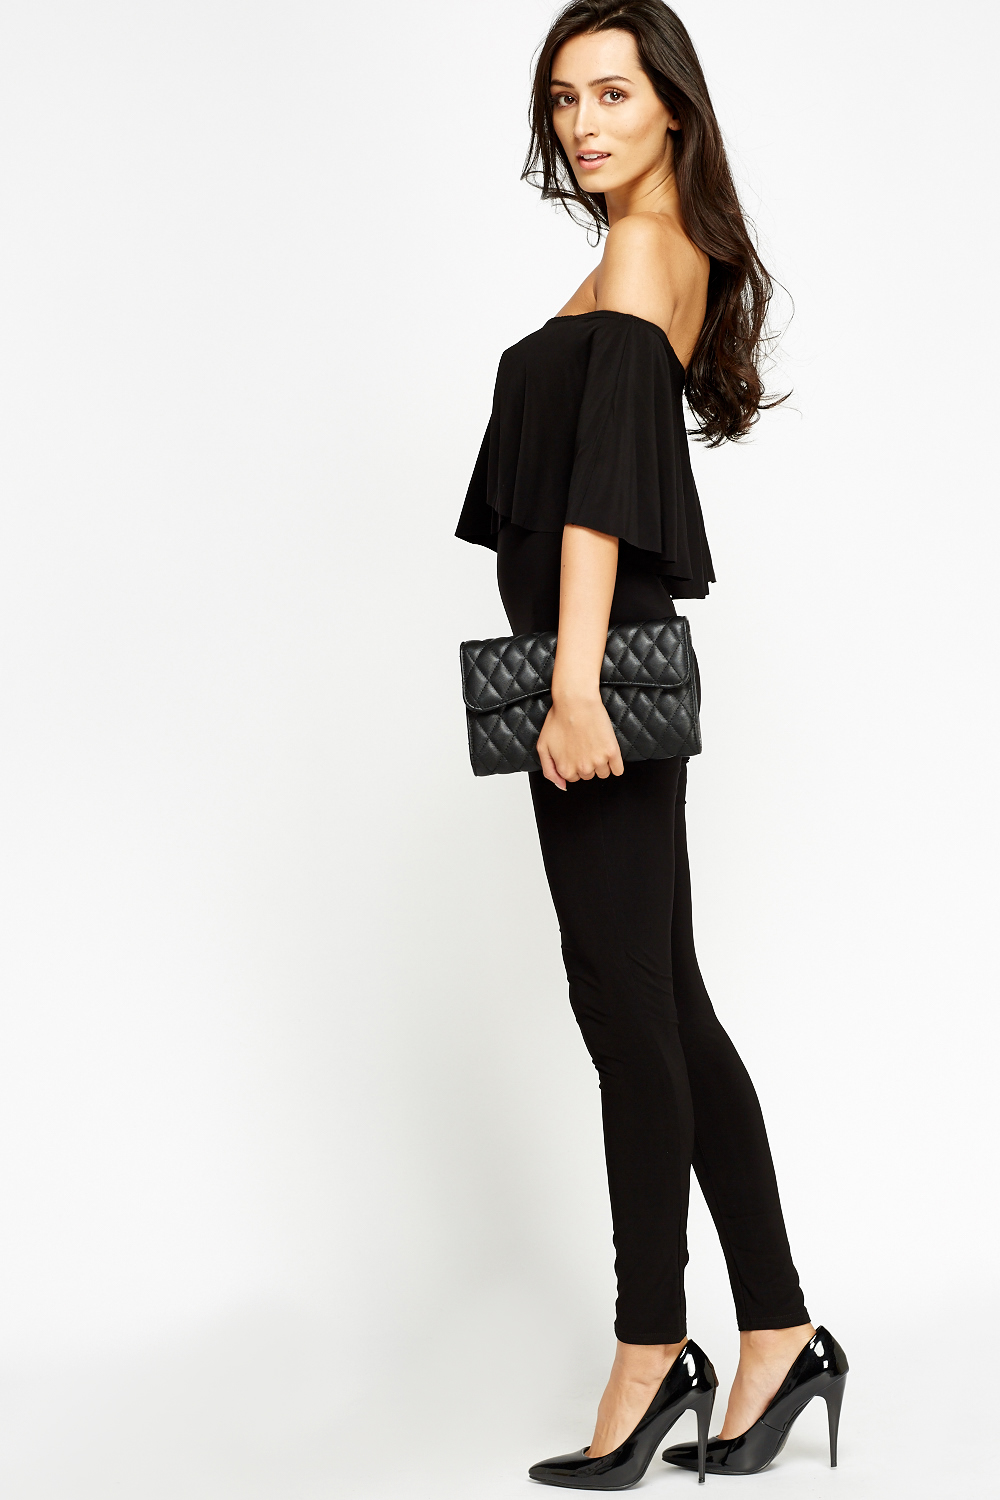 aa9238a75a Black Off Shoulder Flare Jumpsuit - Just £5